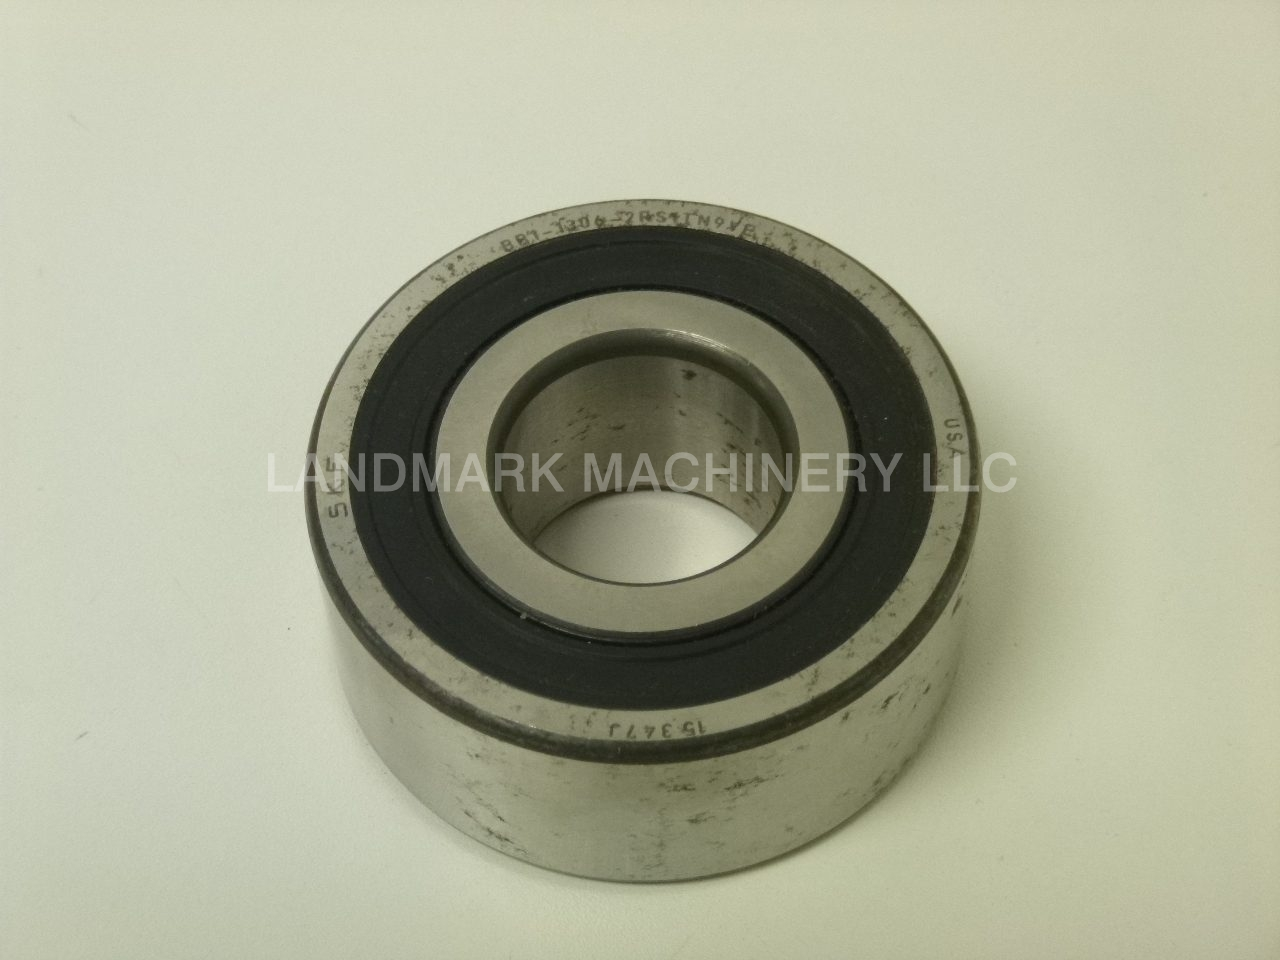 Bearing Machine Bearing Pilot 80mm